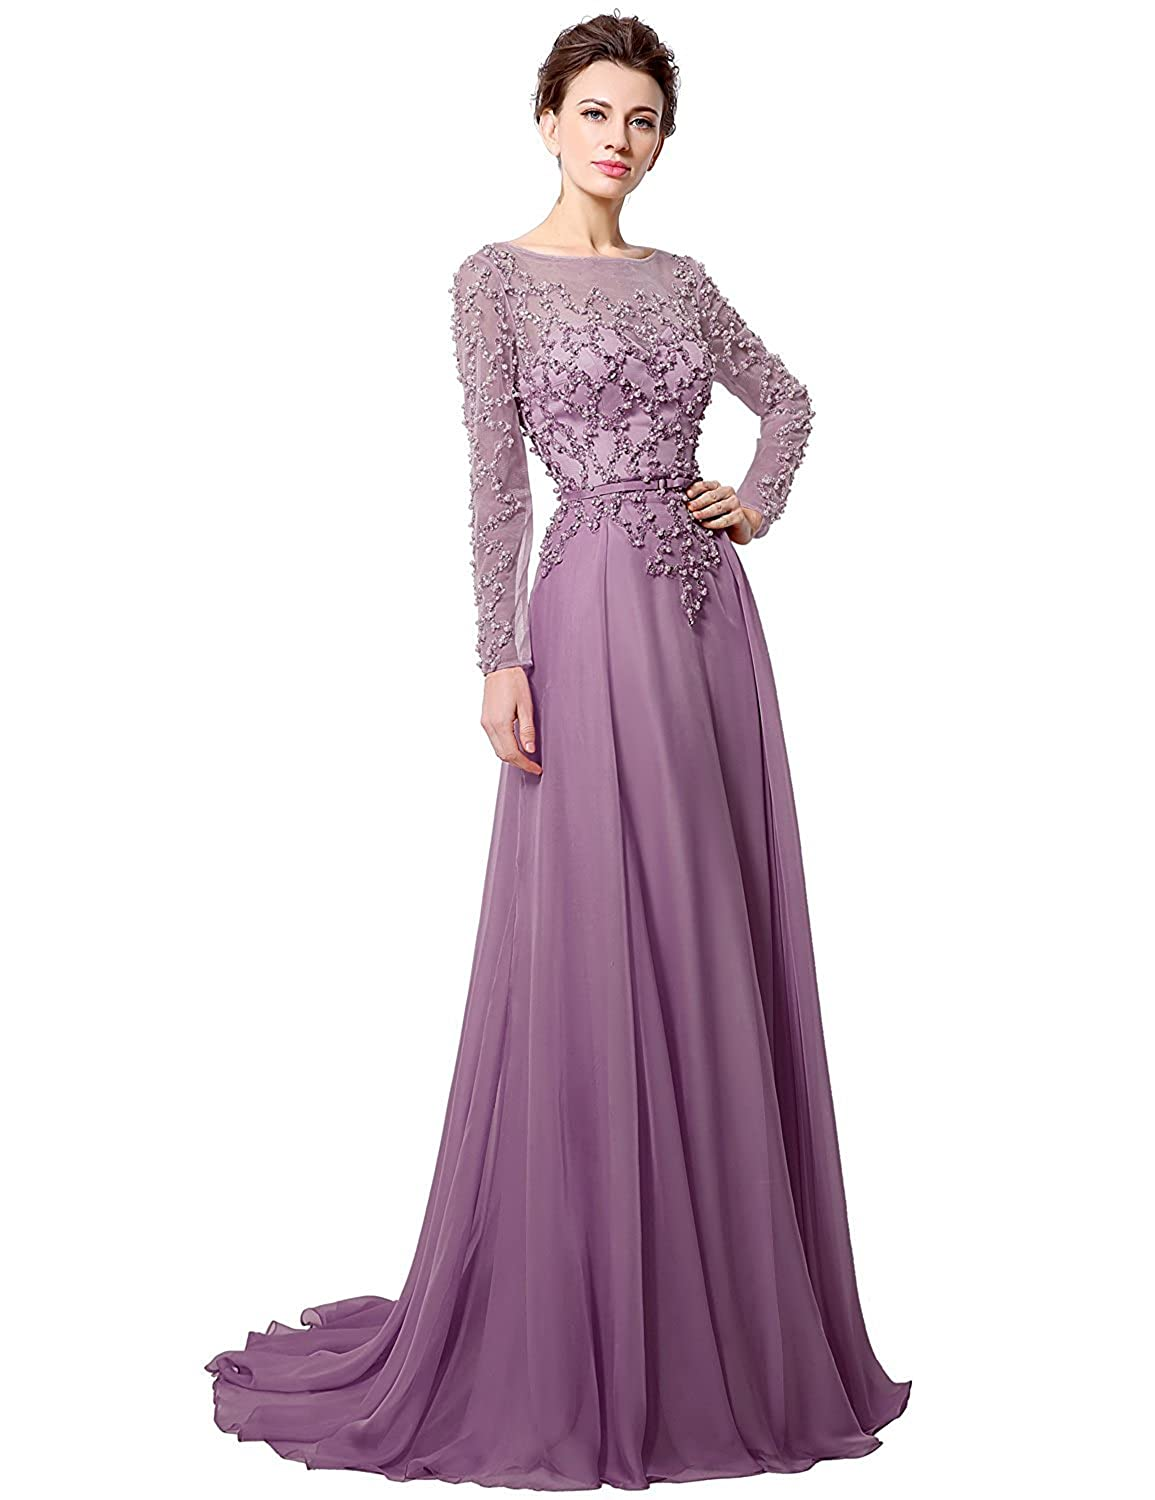 051mauve Sarahbridal Womens Lace Prom Dresses Formal Evening Gown with Half Sleeve SD328